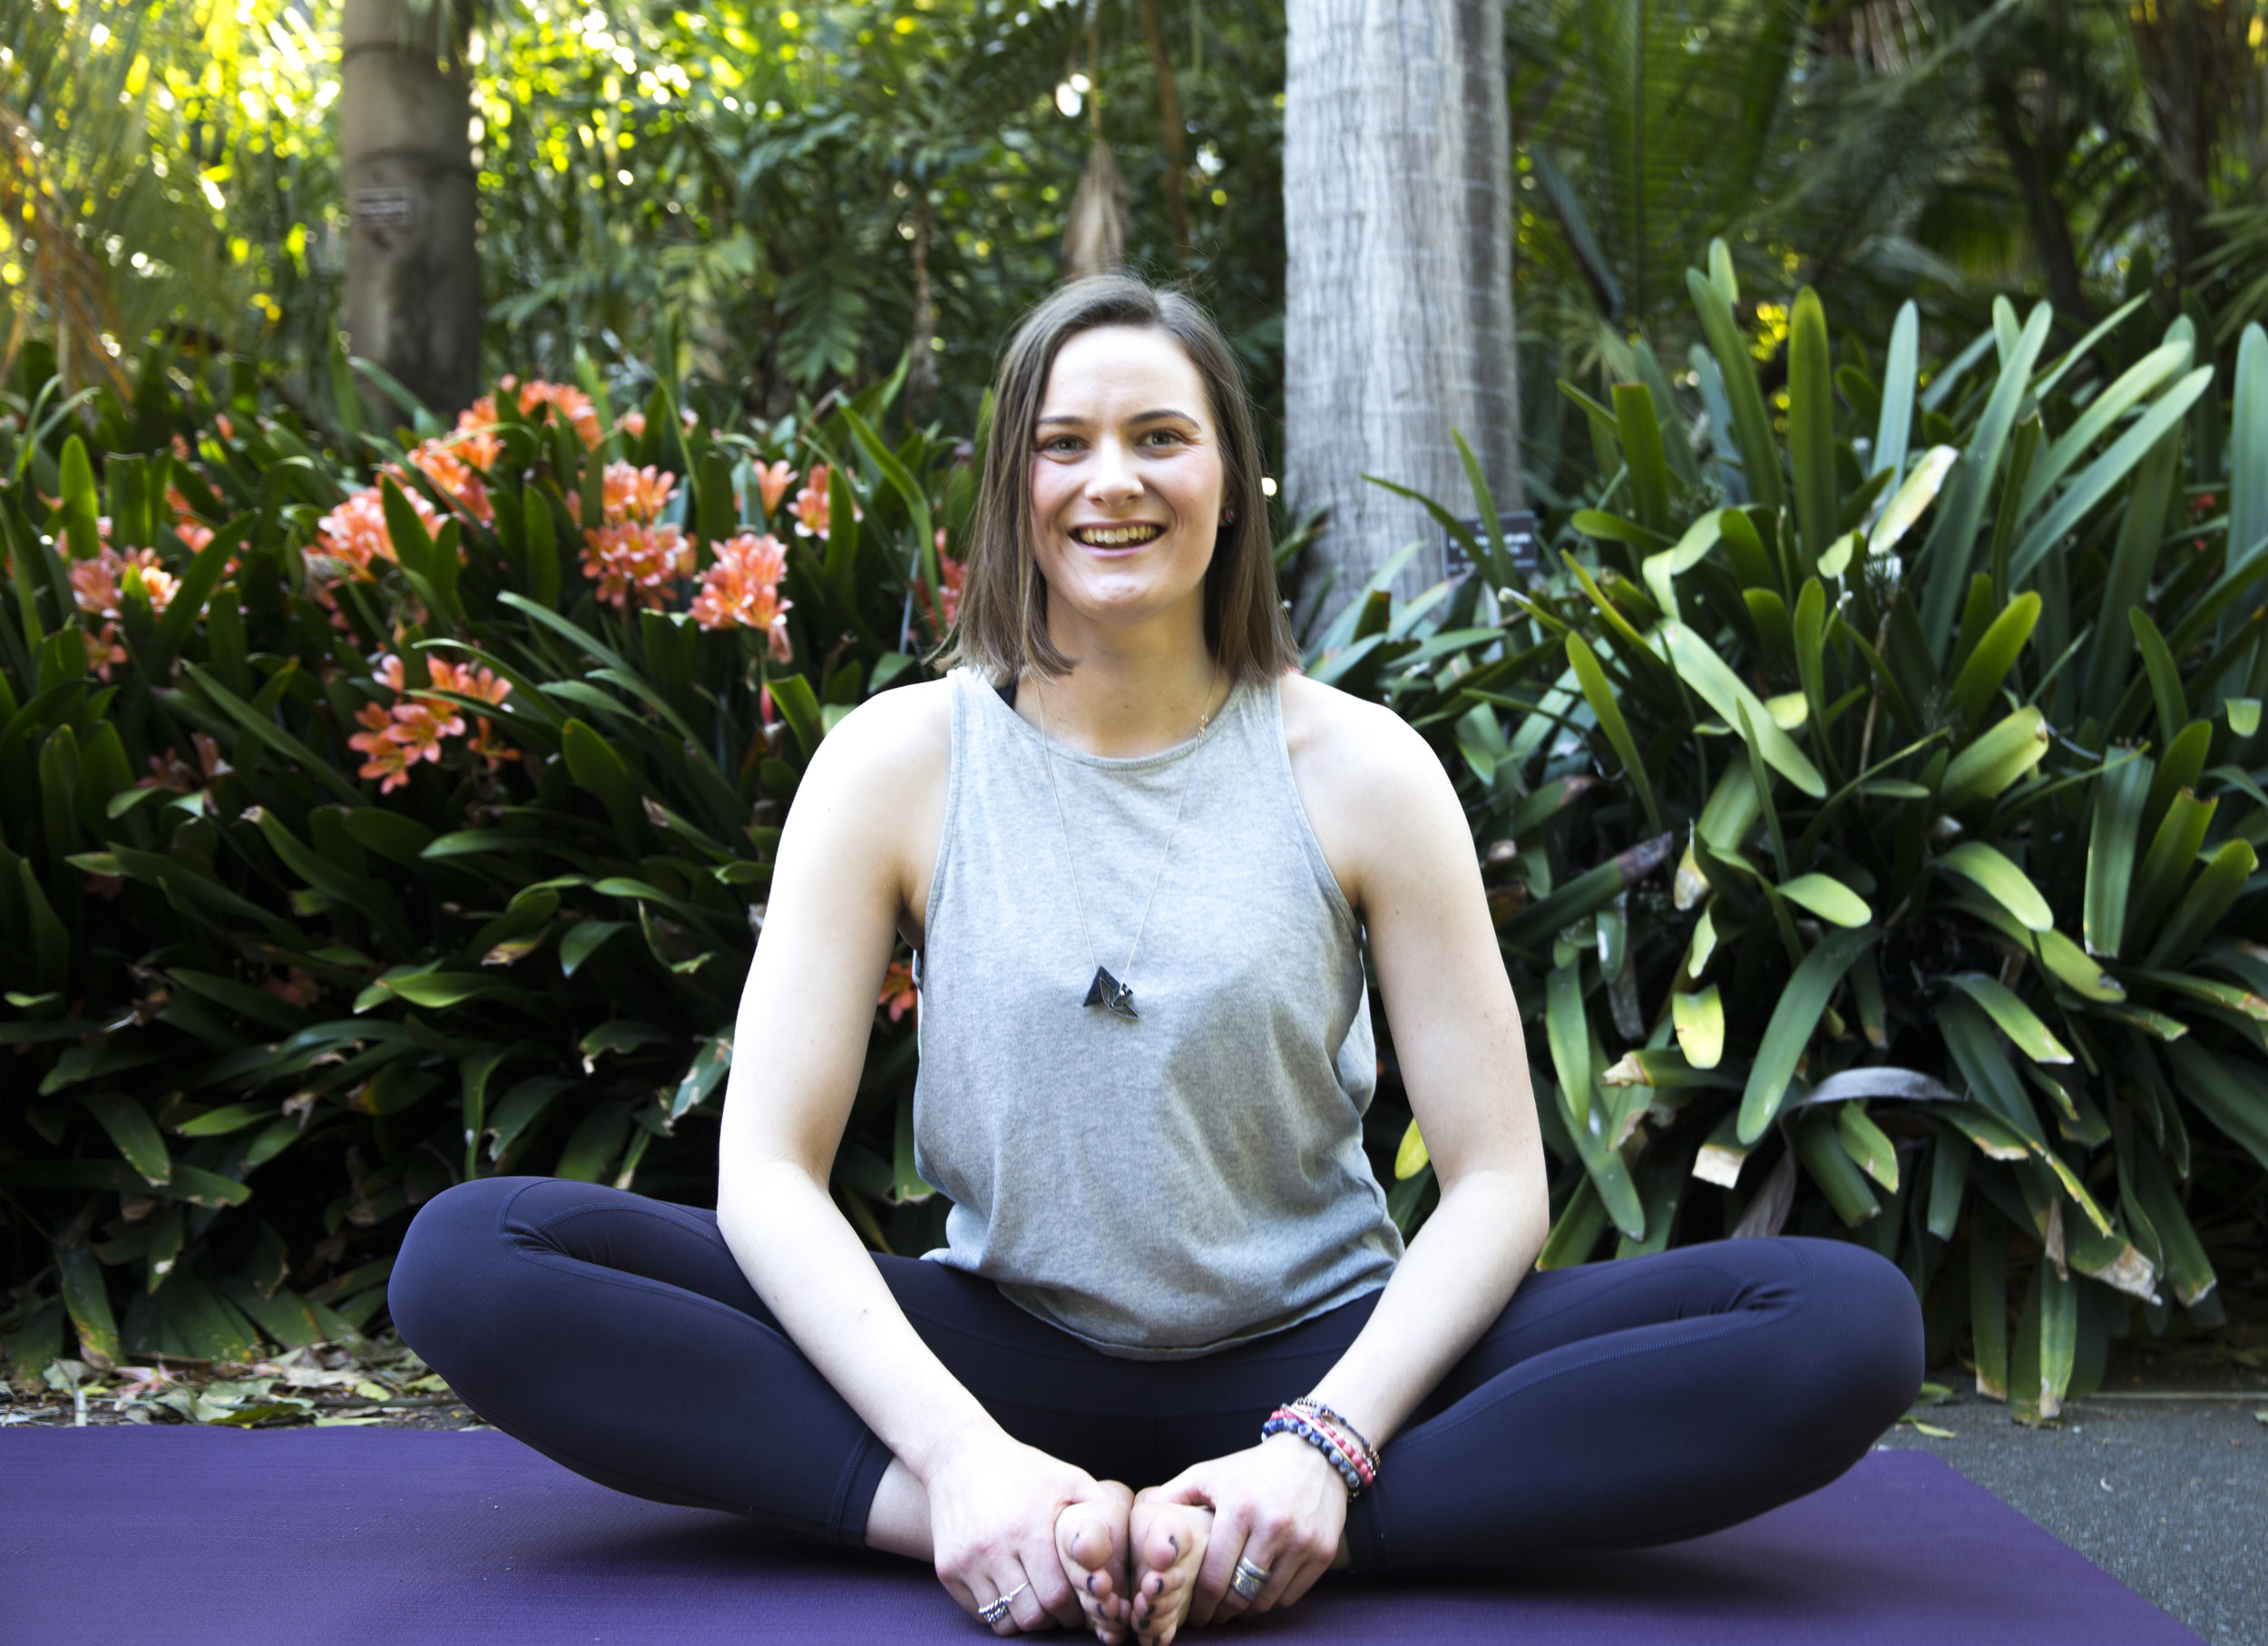 Yoga at Home - With Laura launches during October.